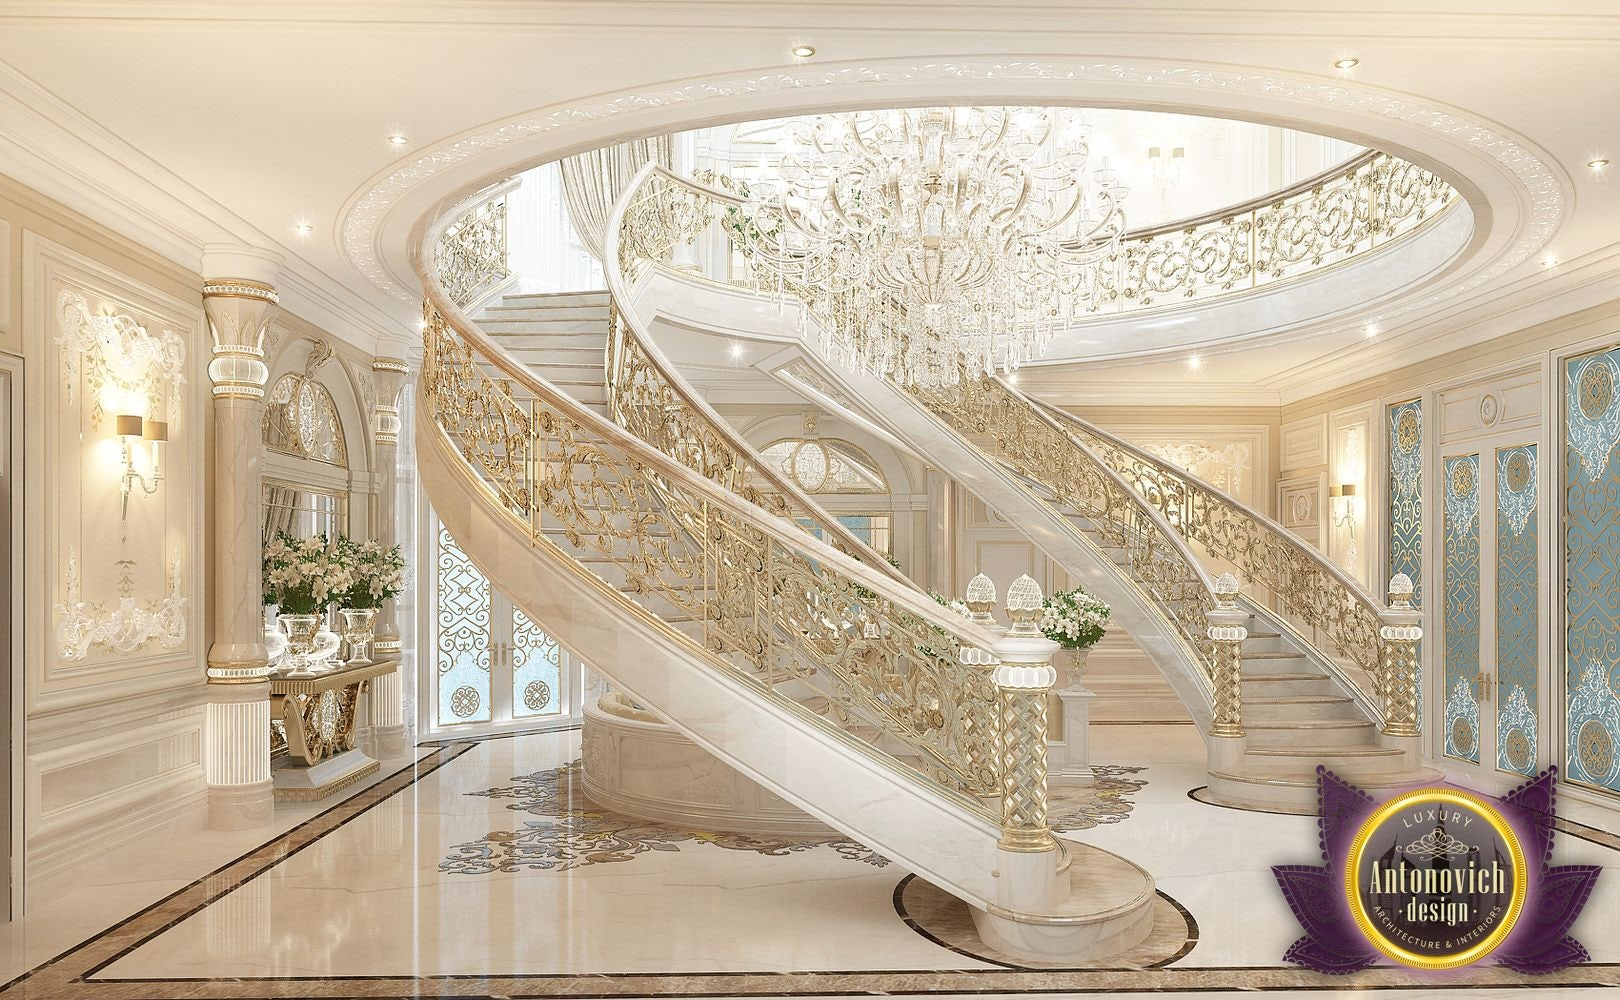 Best Interiors Of Luxury Antonovich Design Dubai Architizer